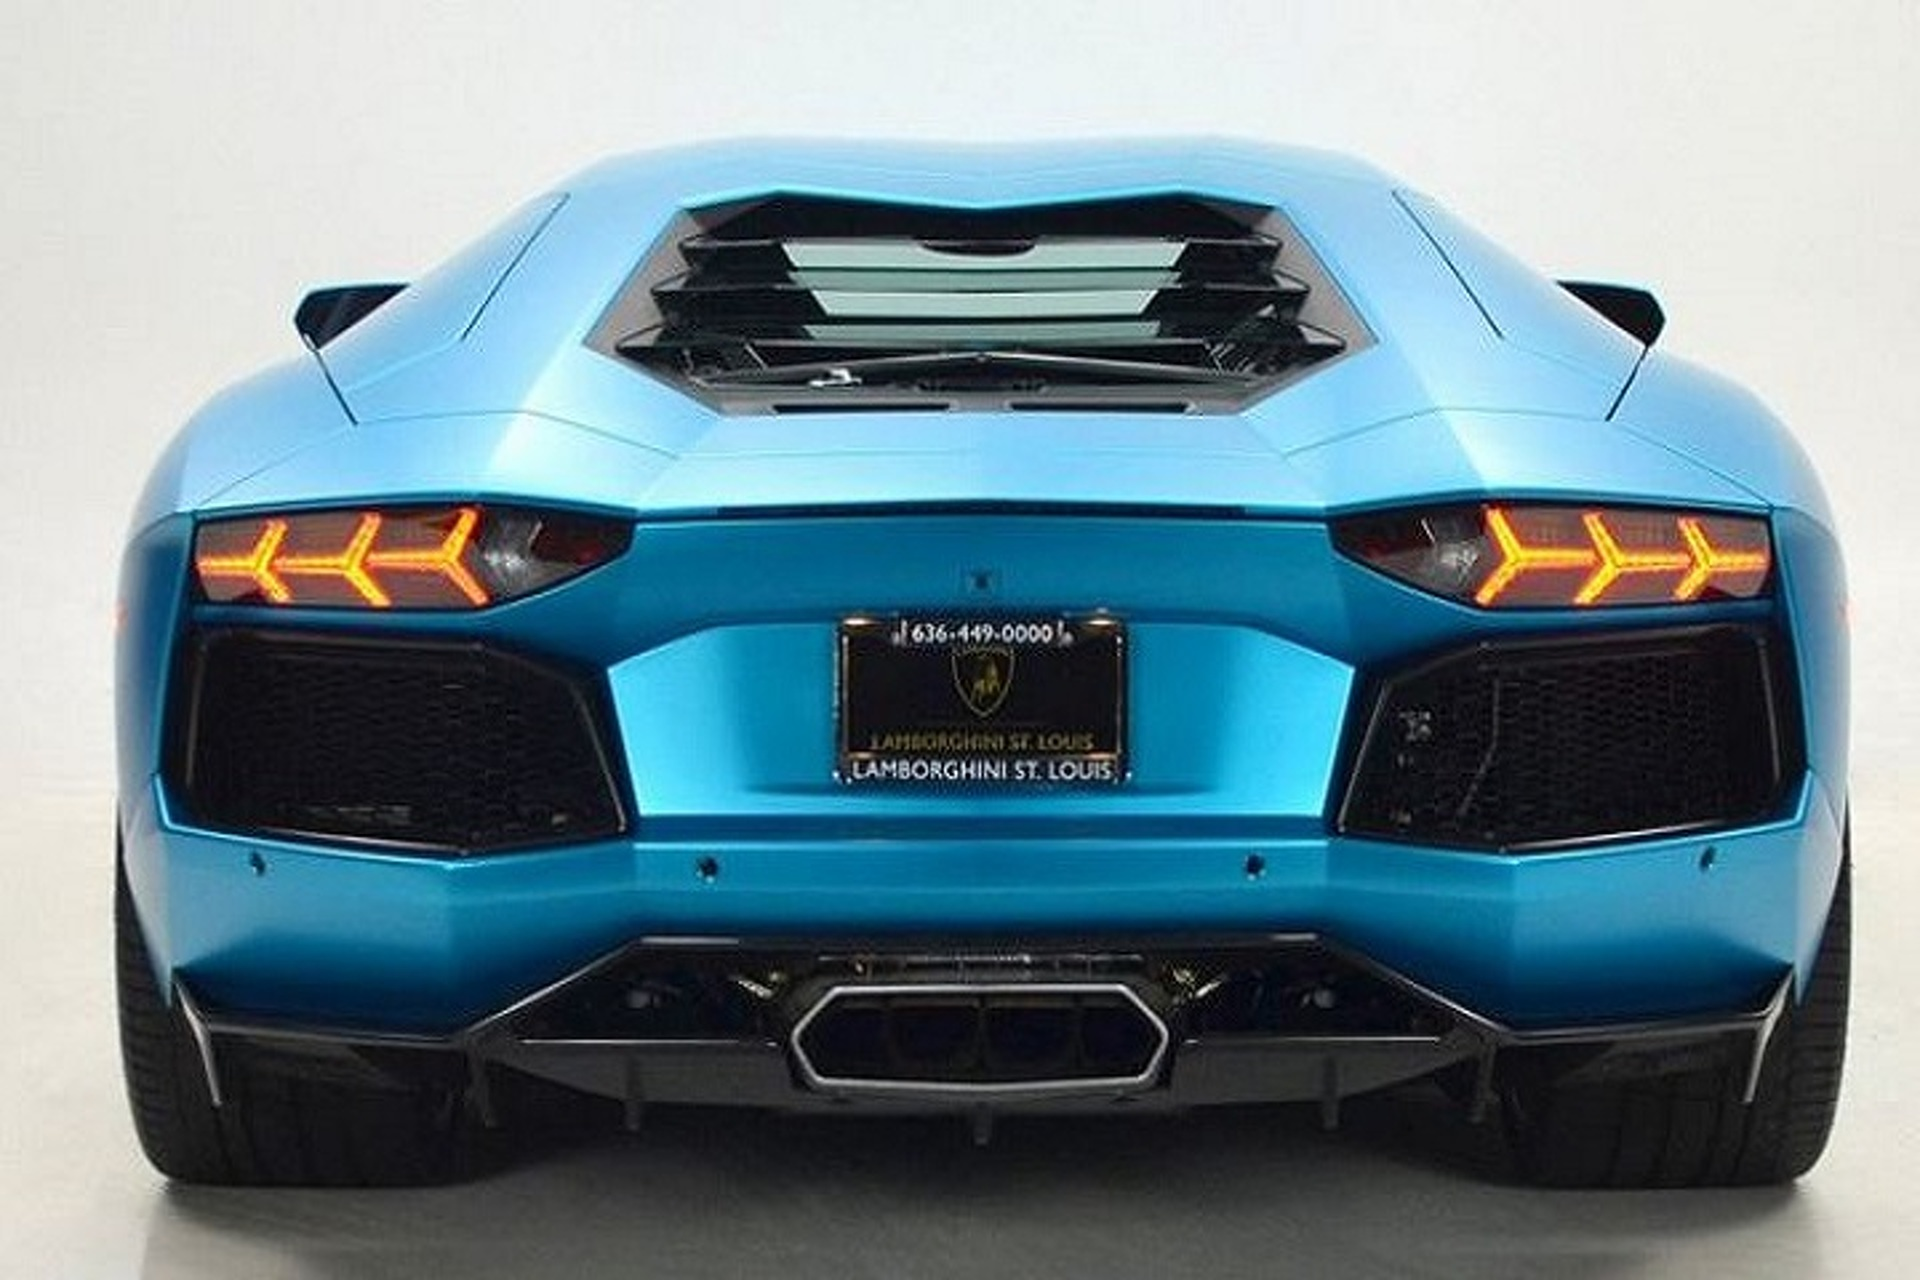 Ocean Shimmer Lamborghini on the Market